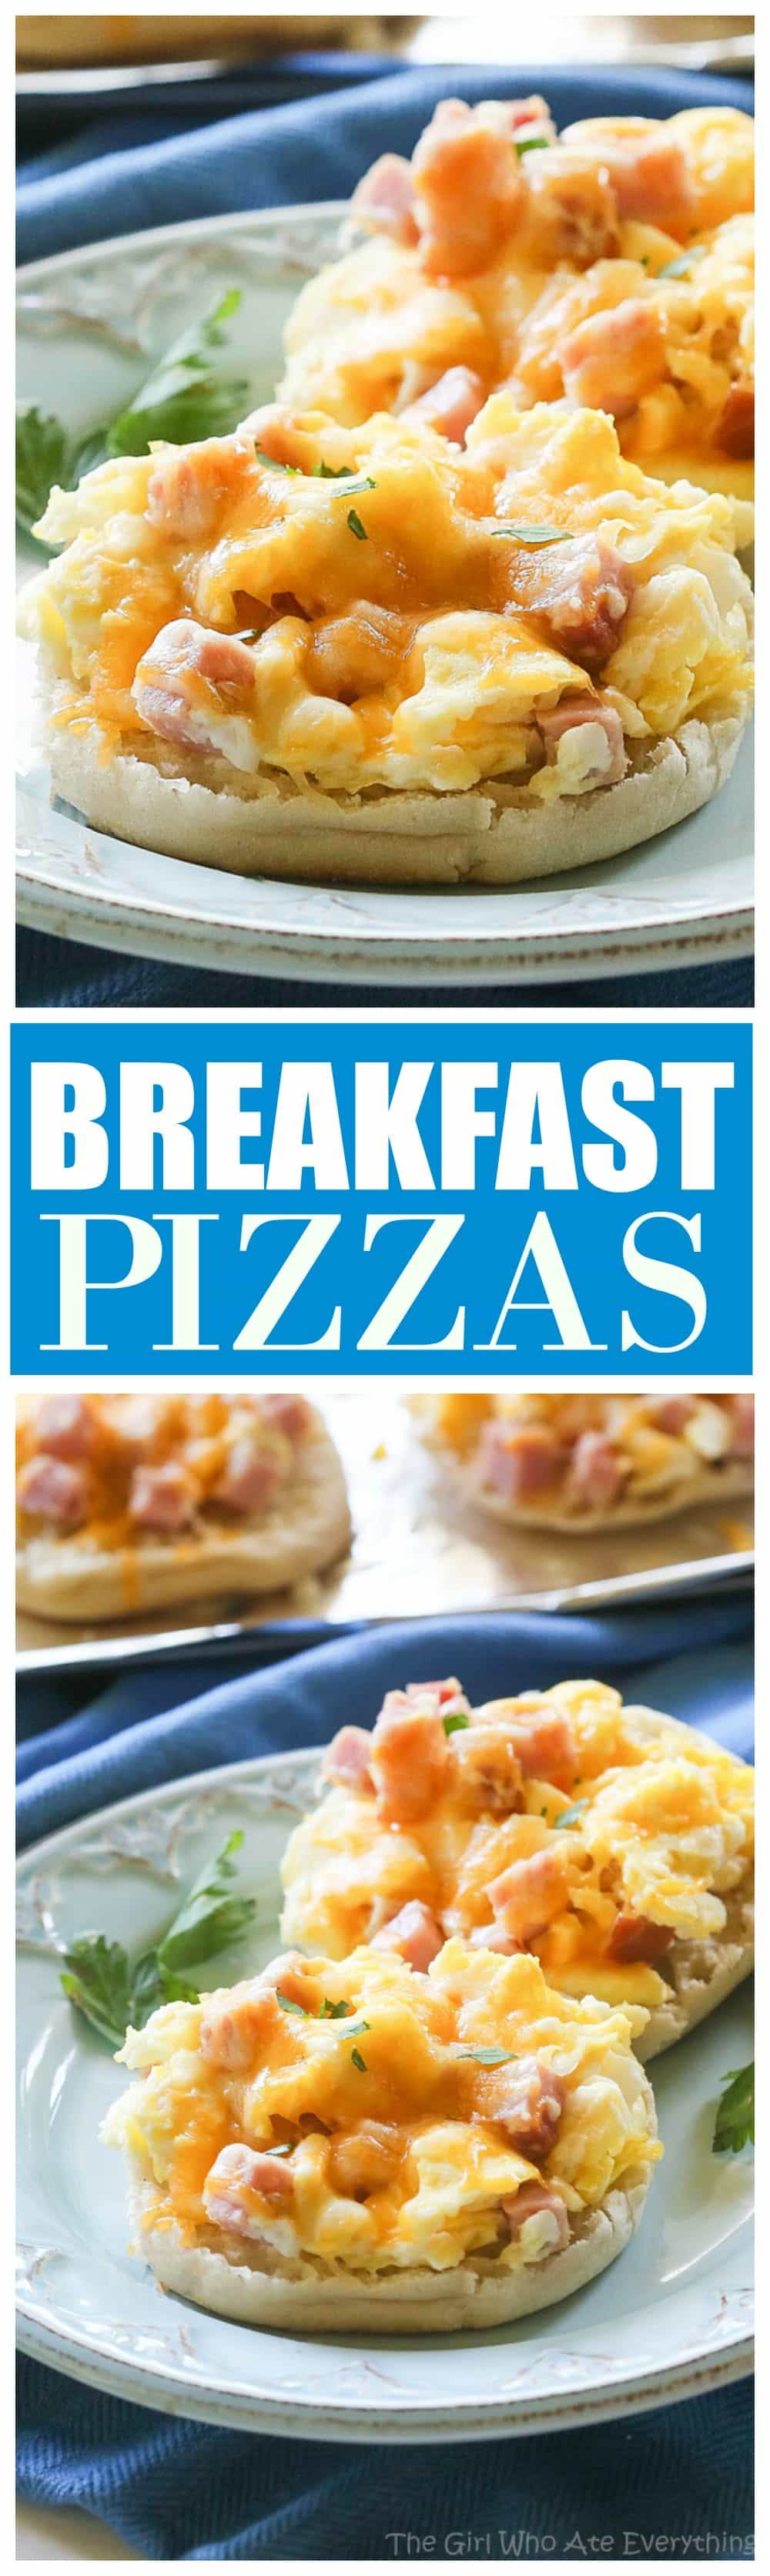 Breakfast Pizzas - scrambled eggs piled on English muffins and even freezer friendly. the-girl-who-ate-everything.com